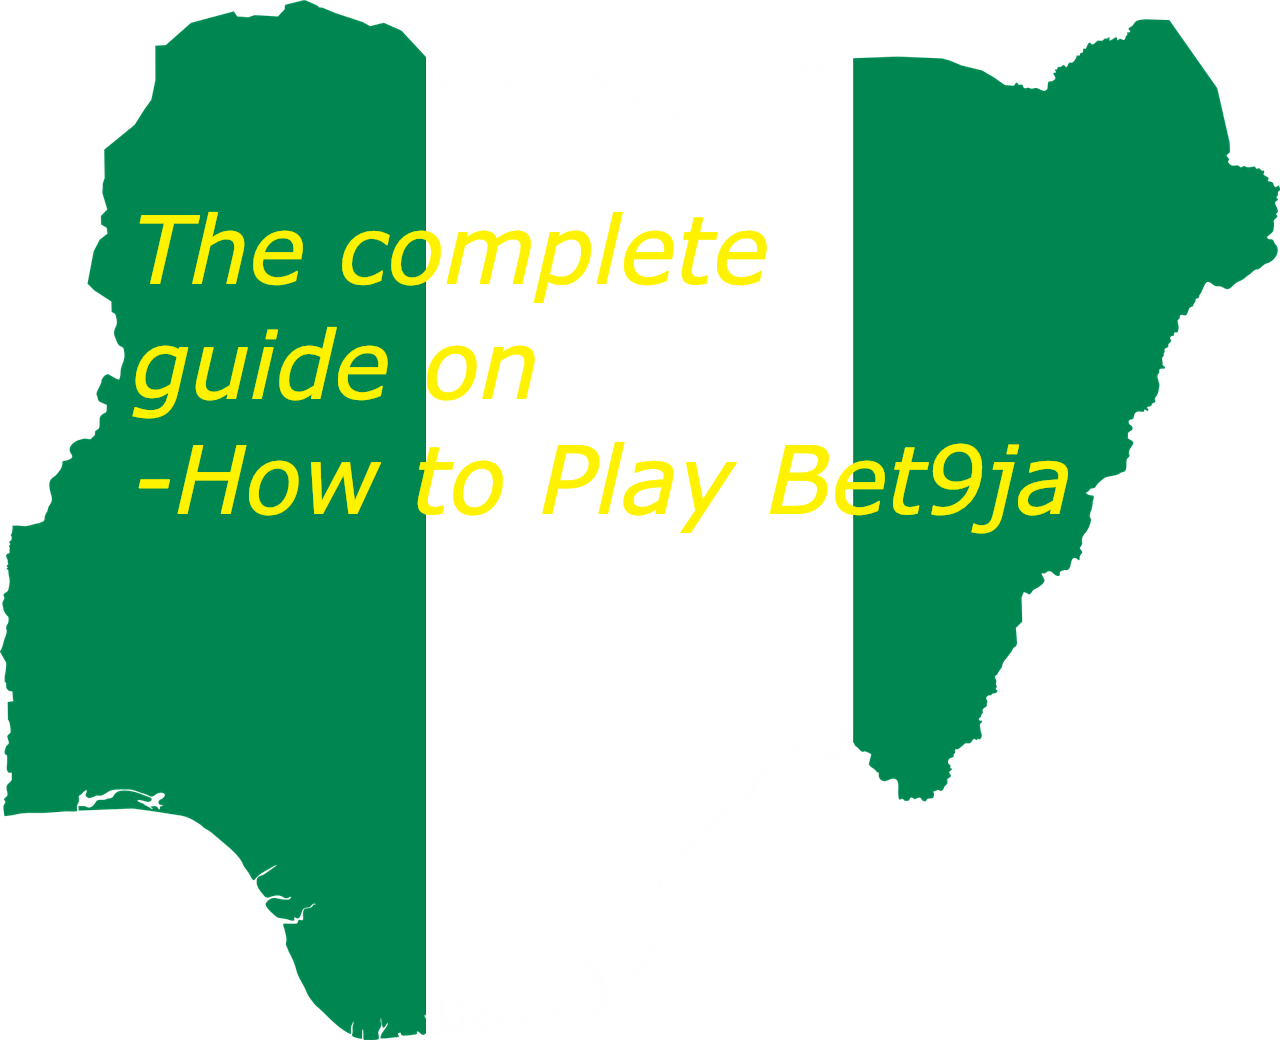 How to Play Bet9ja - Full guide to Play and Bet - MOBYBETS COM